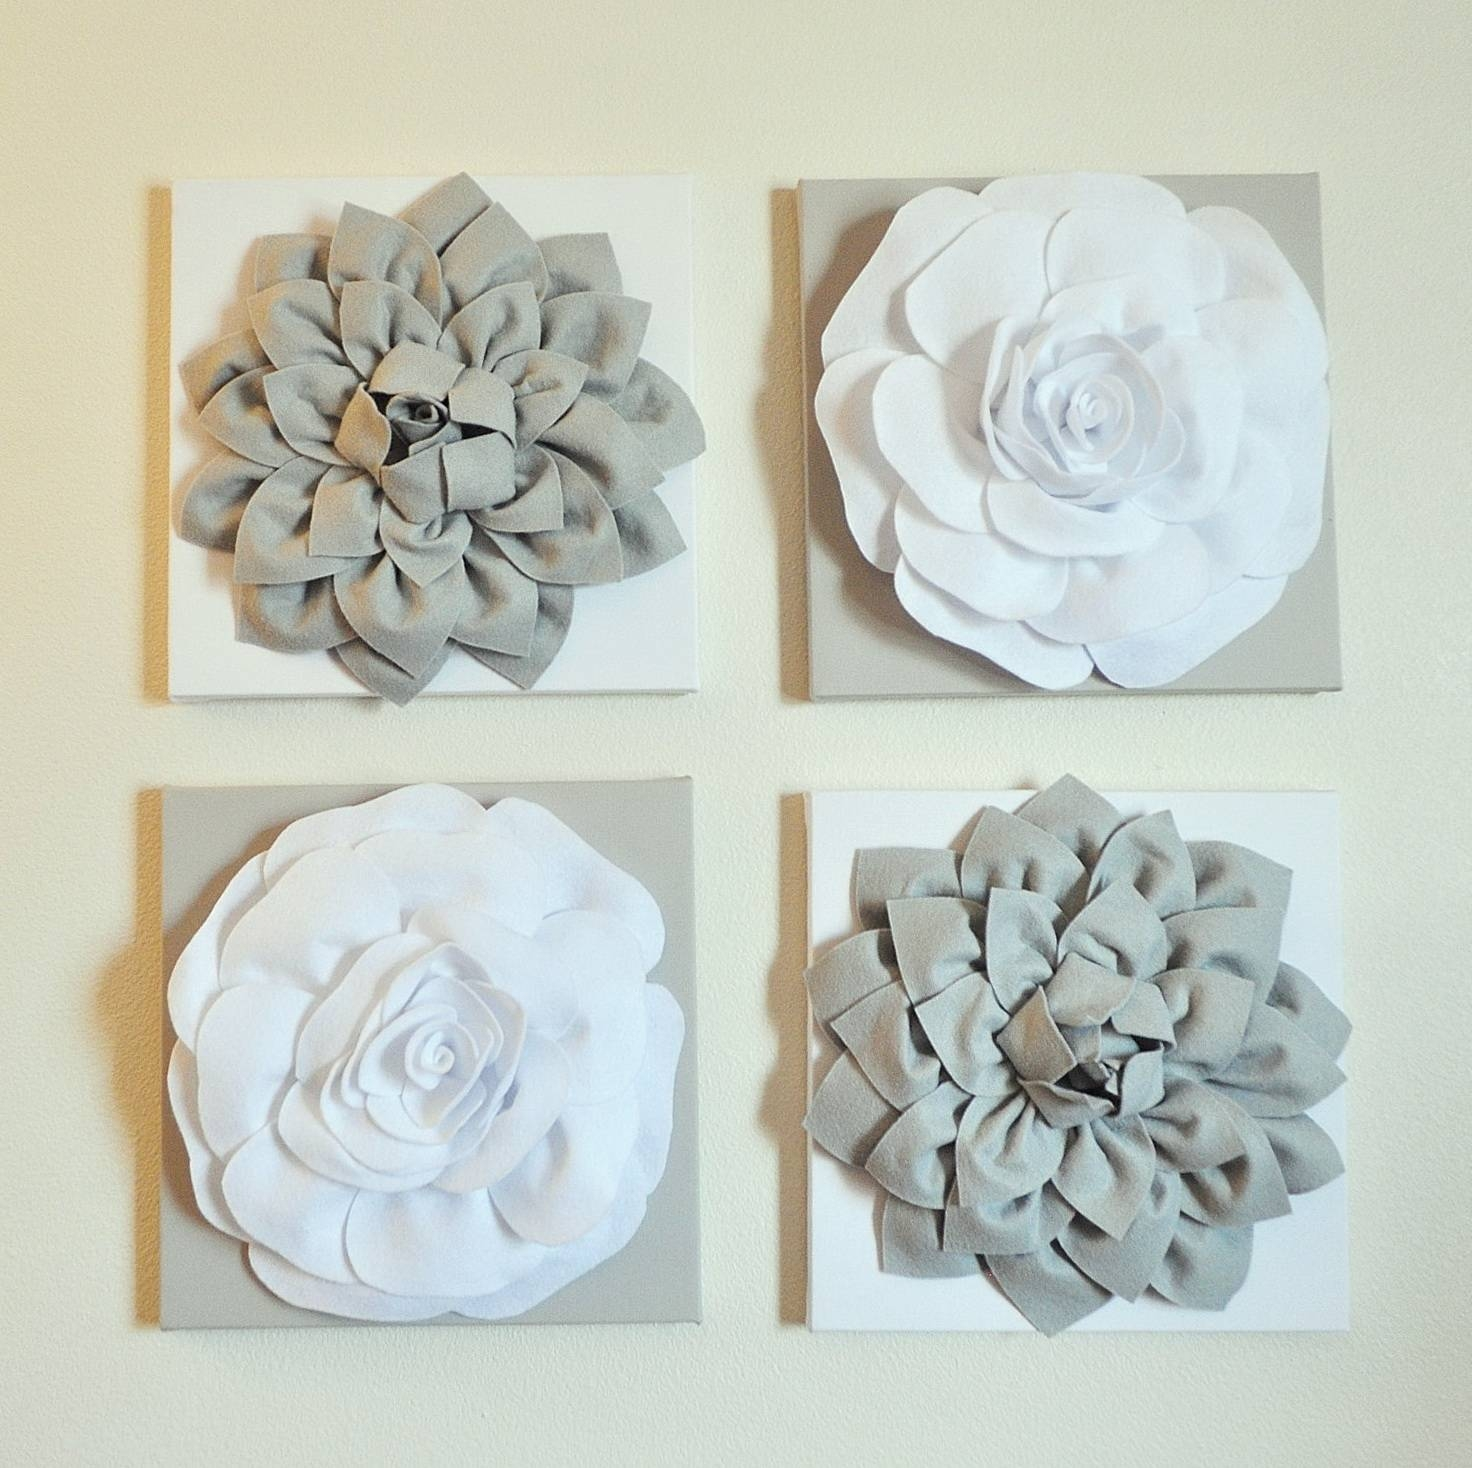 White Metal Flower Wall Art | Home Design Ideas Intended For 2017 White Metal Wall Art (View 19 of 20)